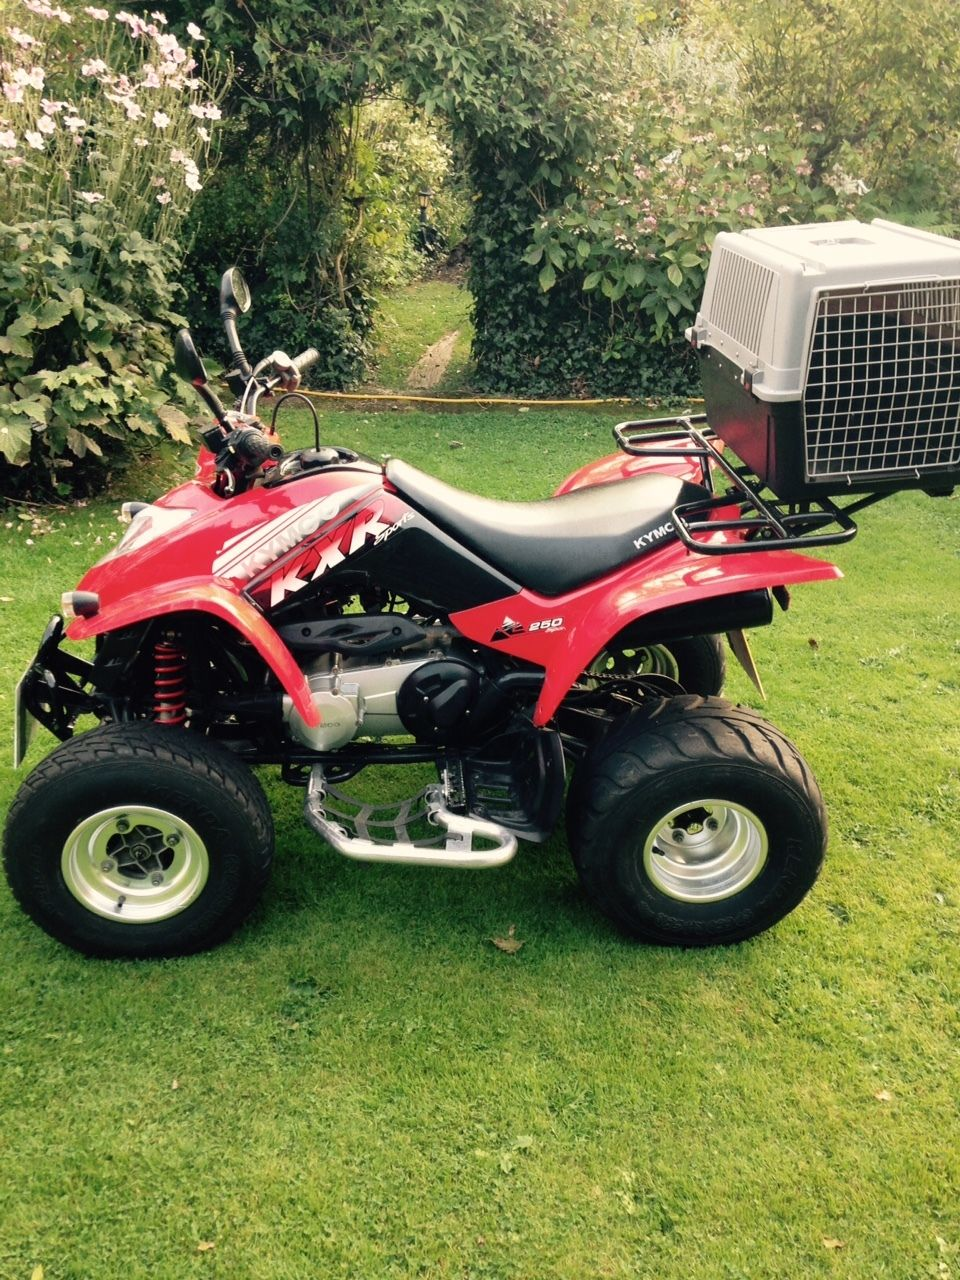 250cc quad bike 2004 kymco kxr 250 rl quad bike red. Black Bedroom Furniture Sets. Home Design Ideas